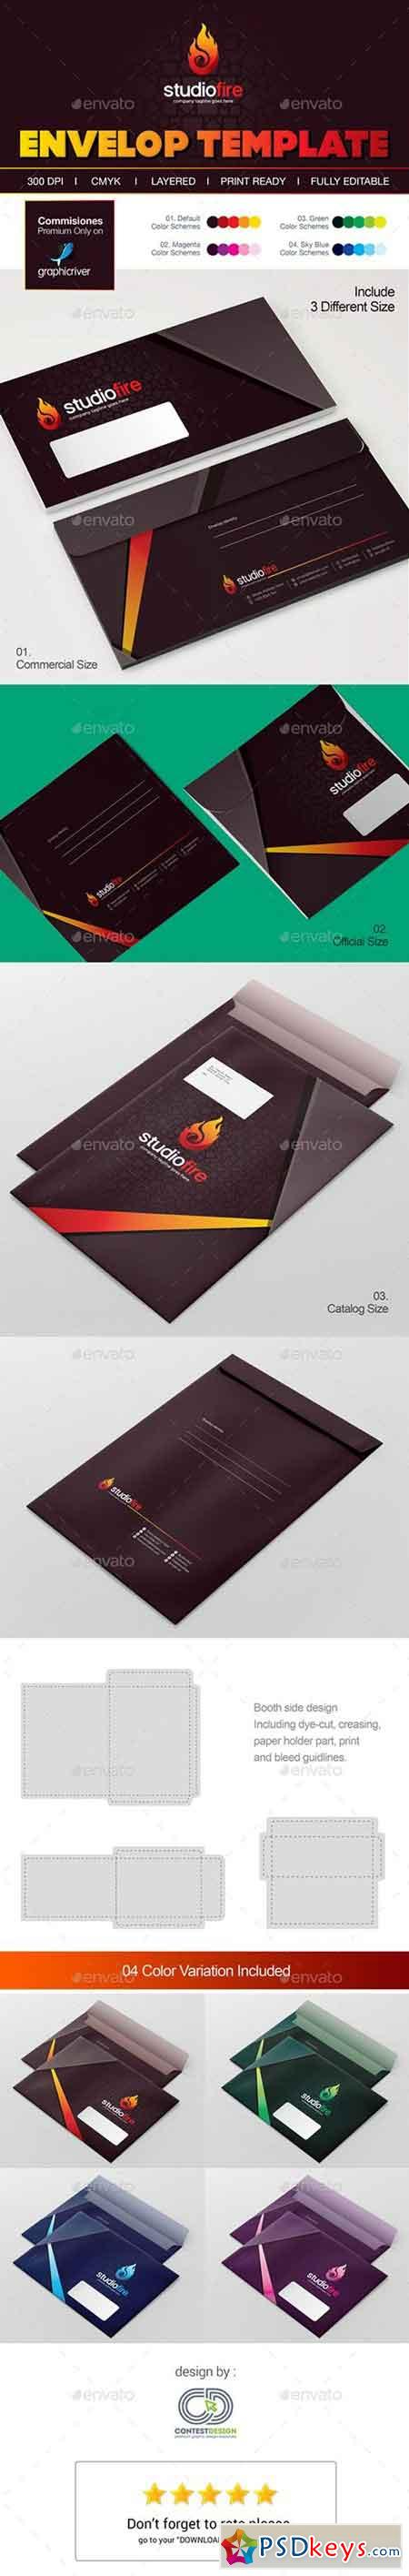 Envelope Template 19174699